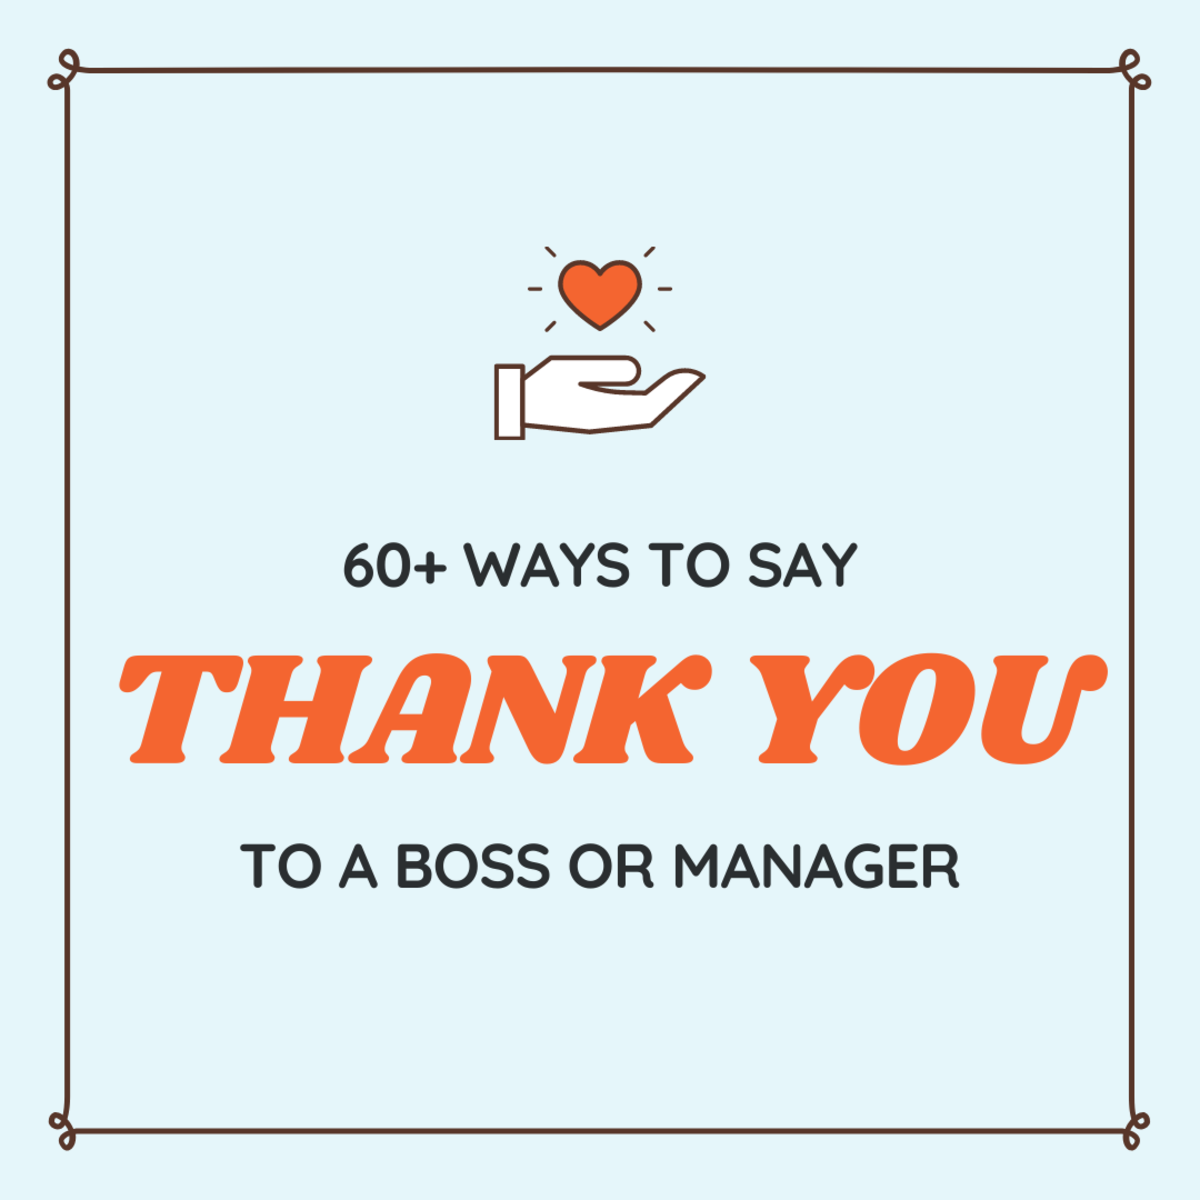 Make sure your boss knows how much you appreciate them!